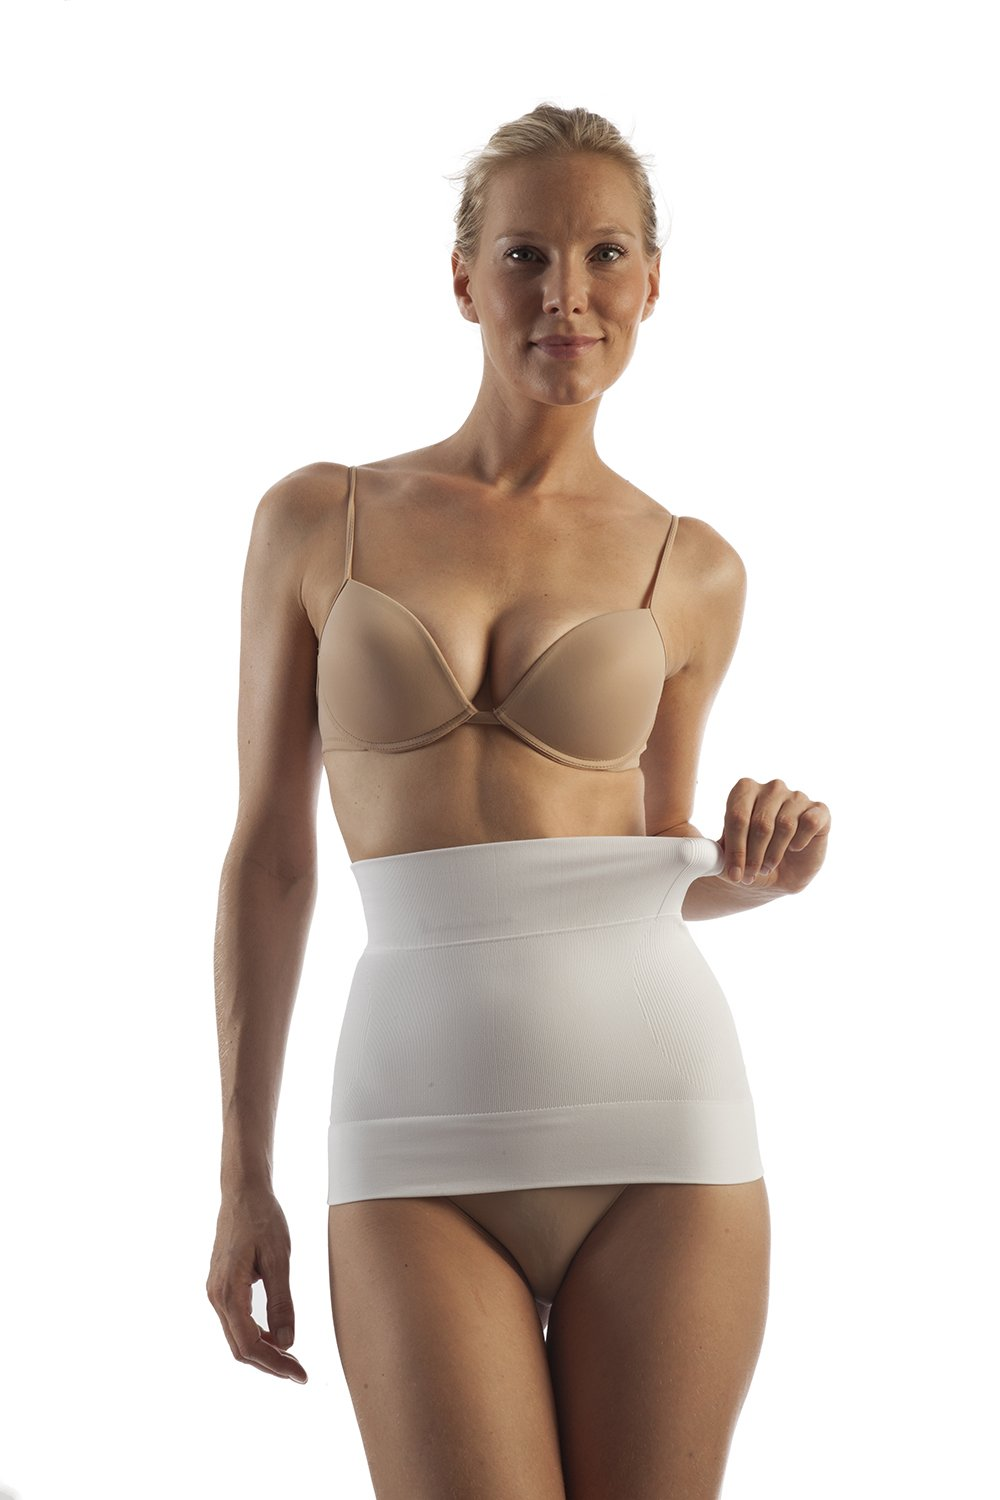 GABRIALLA Seamless Body Shaping Abdominal Support Binder, Milk Protein Fiber (BSM-705) - Gabrialla